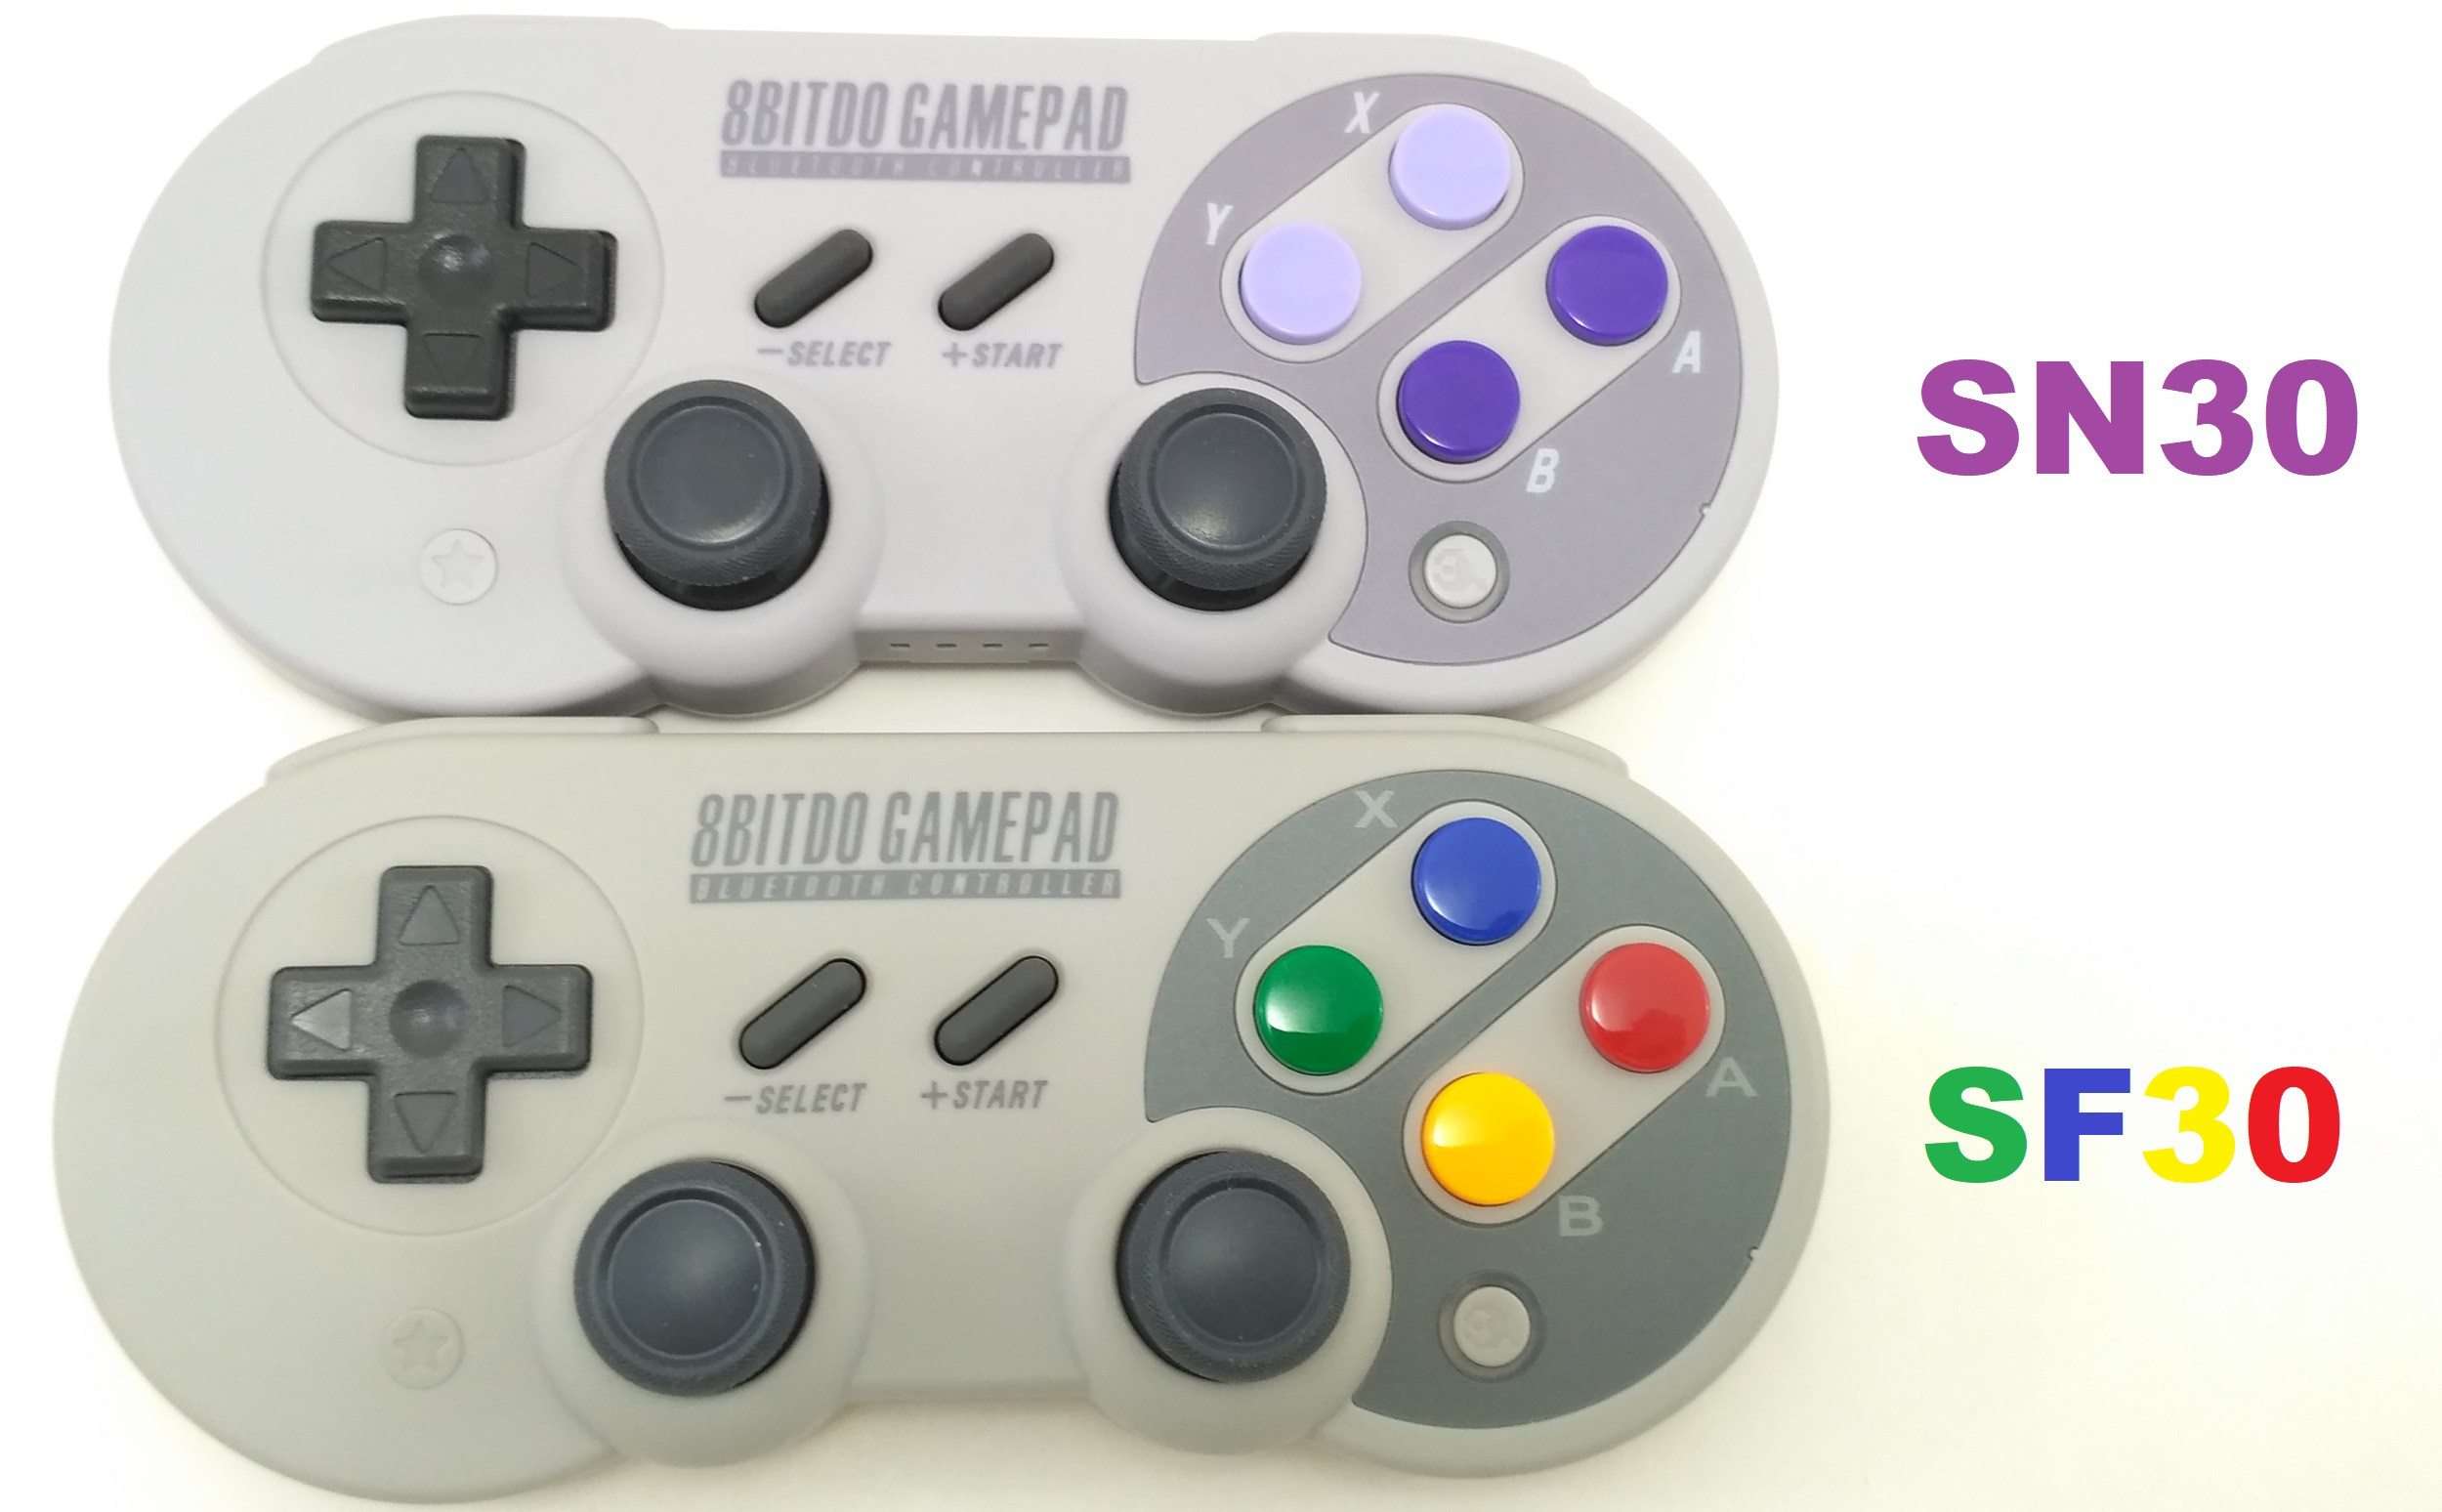 8Bitdo SF30 Pro & SN30 Pro review - htxt africa